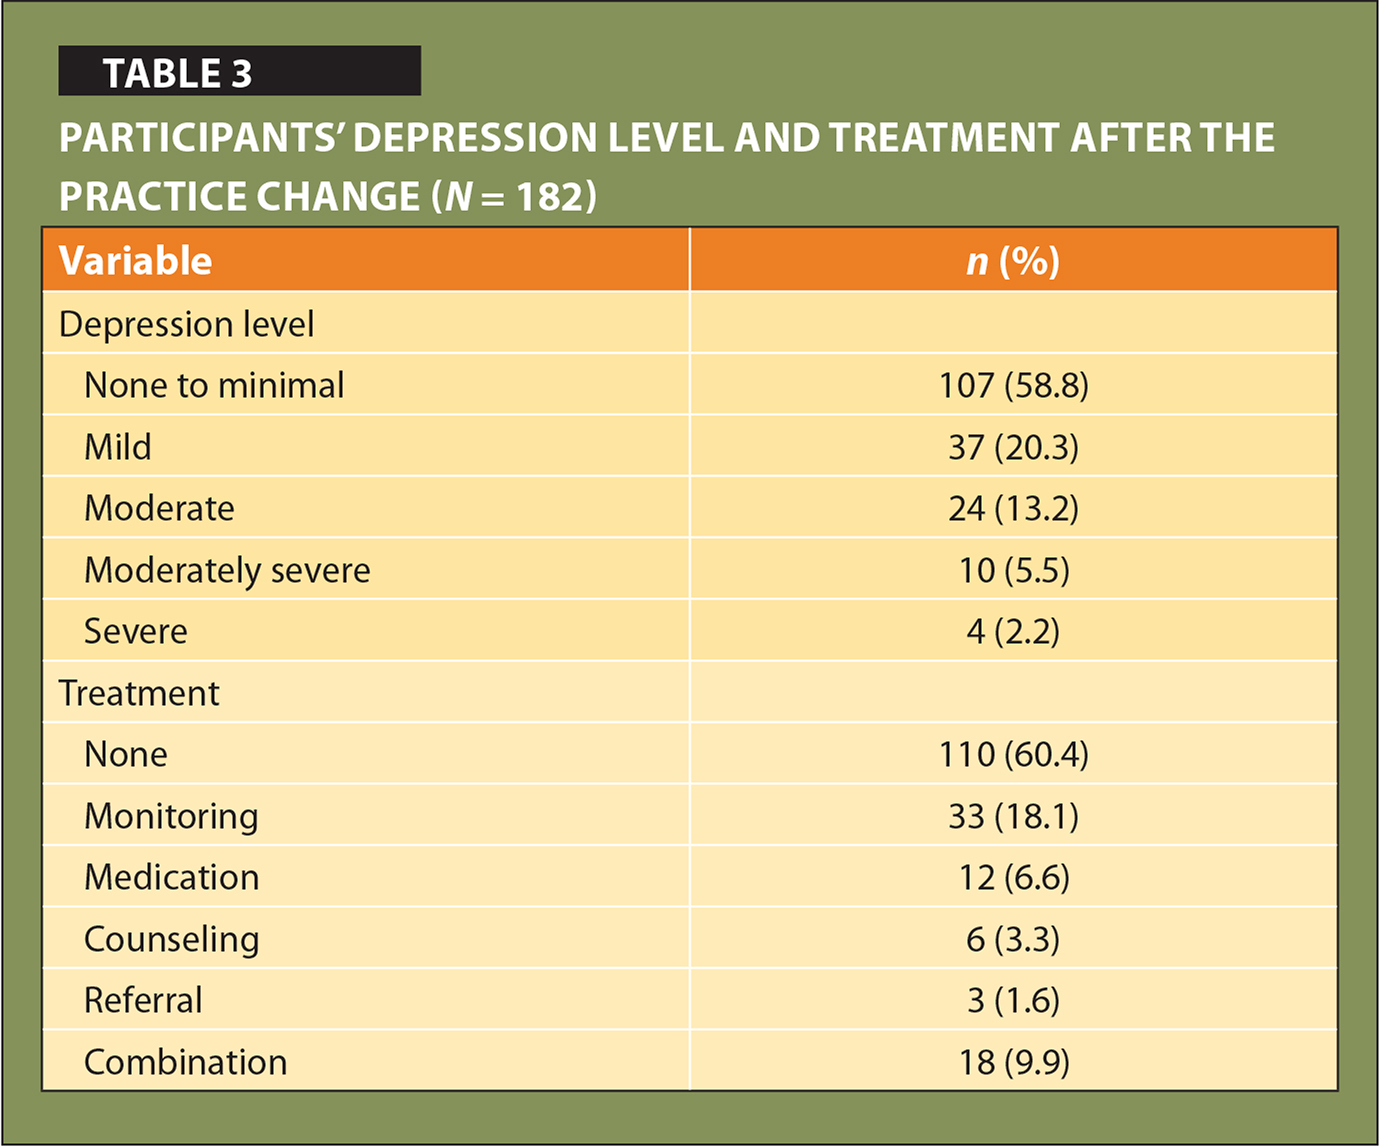 Participants' Depression Level and Treatment After the Practice Change (N = 182)